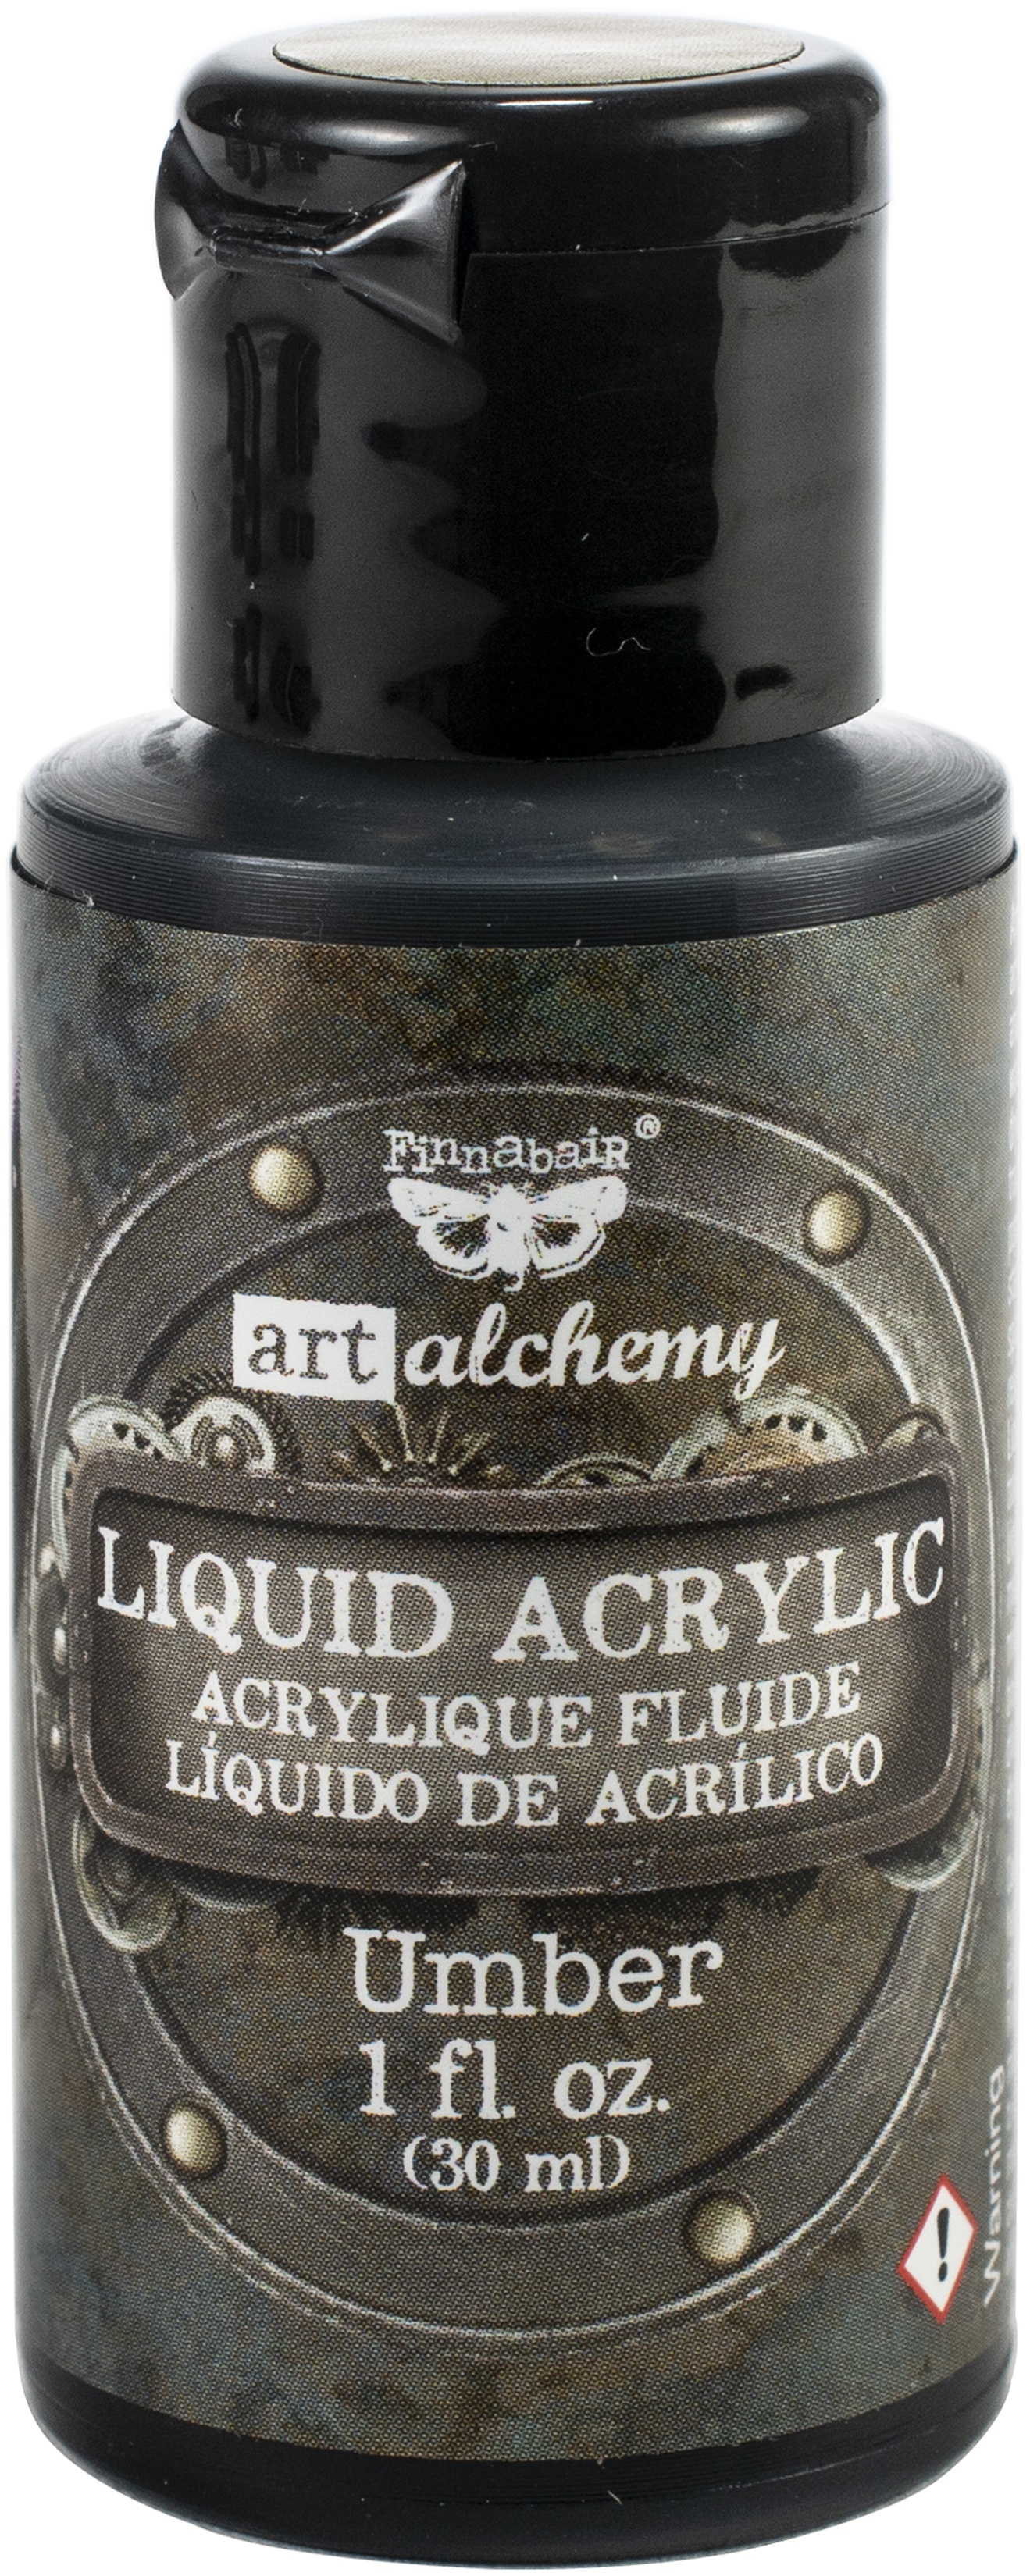 Finnabair Art Alchemy Liquid Acrylic Paint 1 Oz-Umber